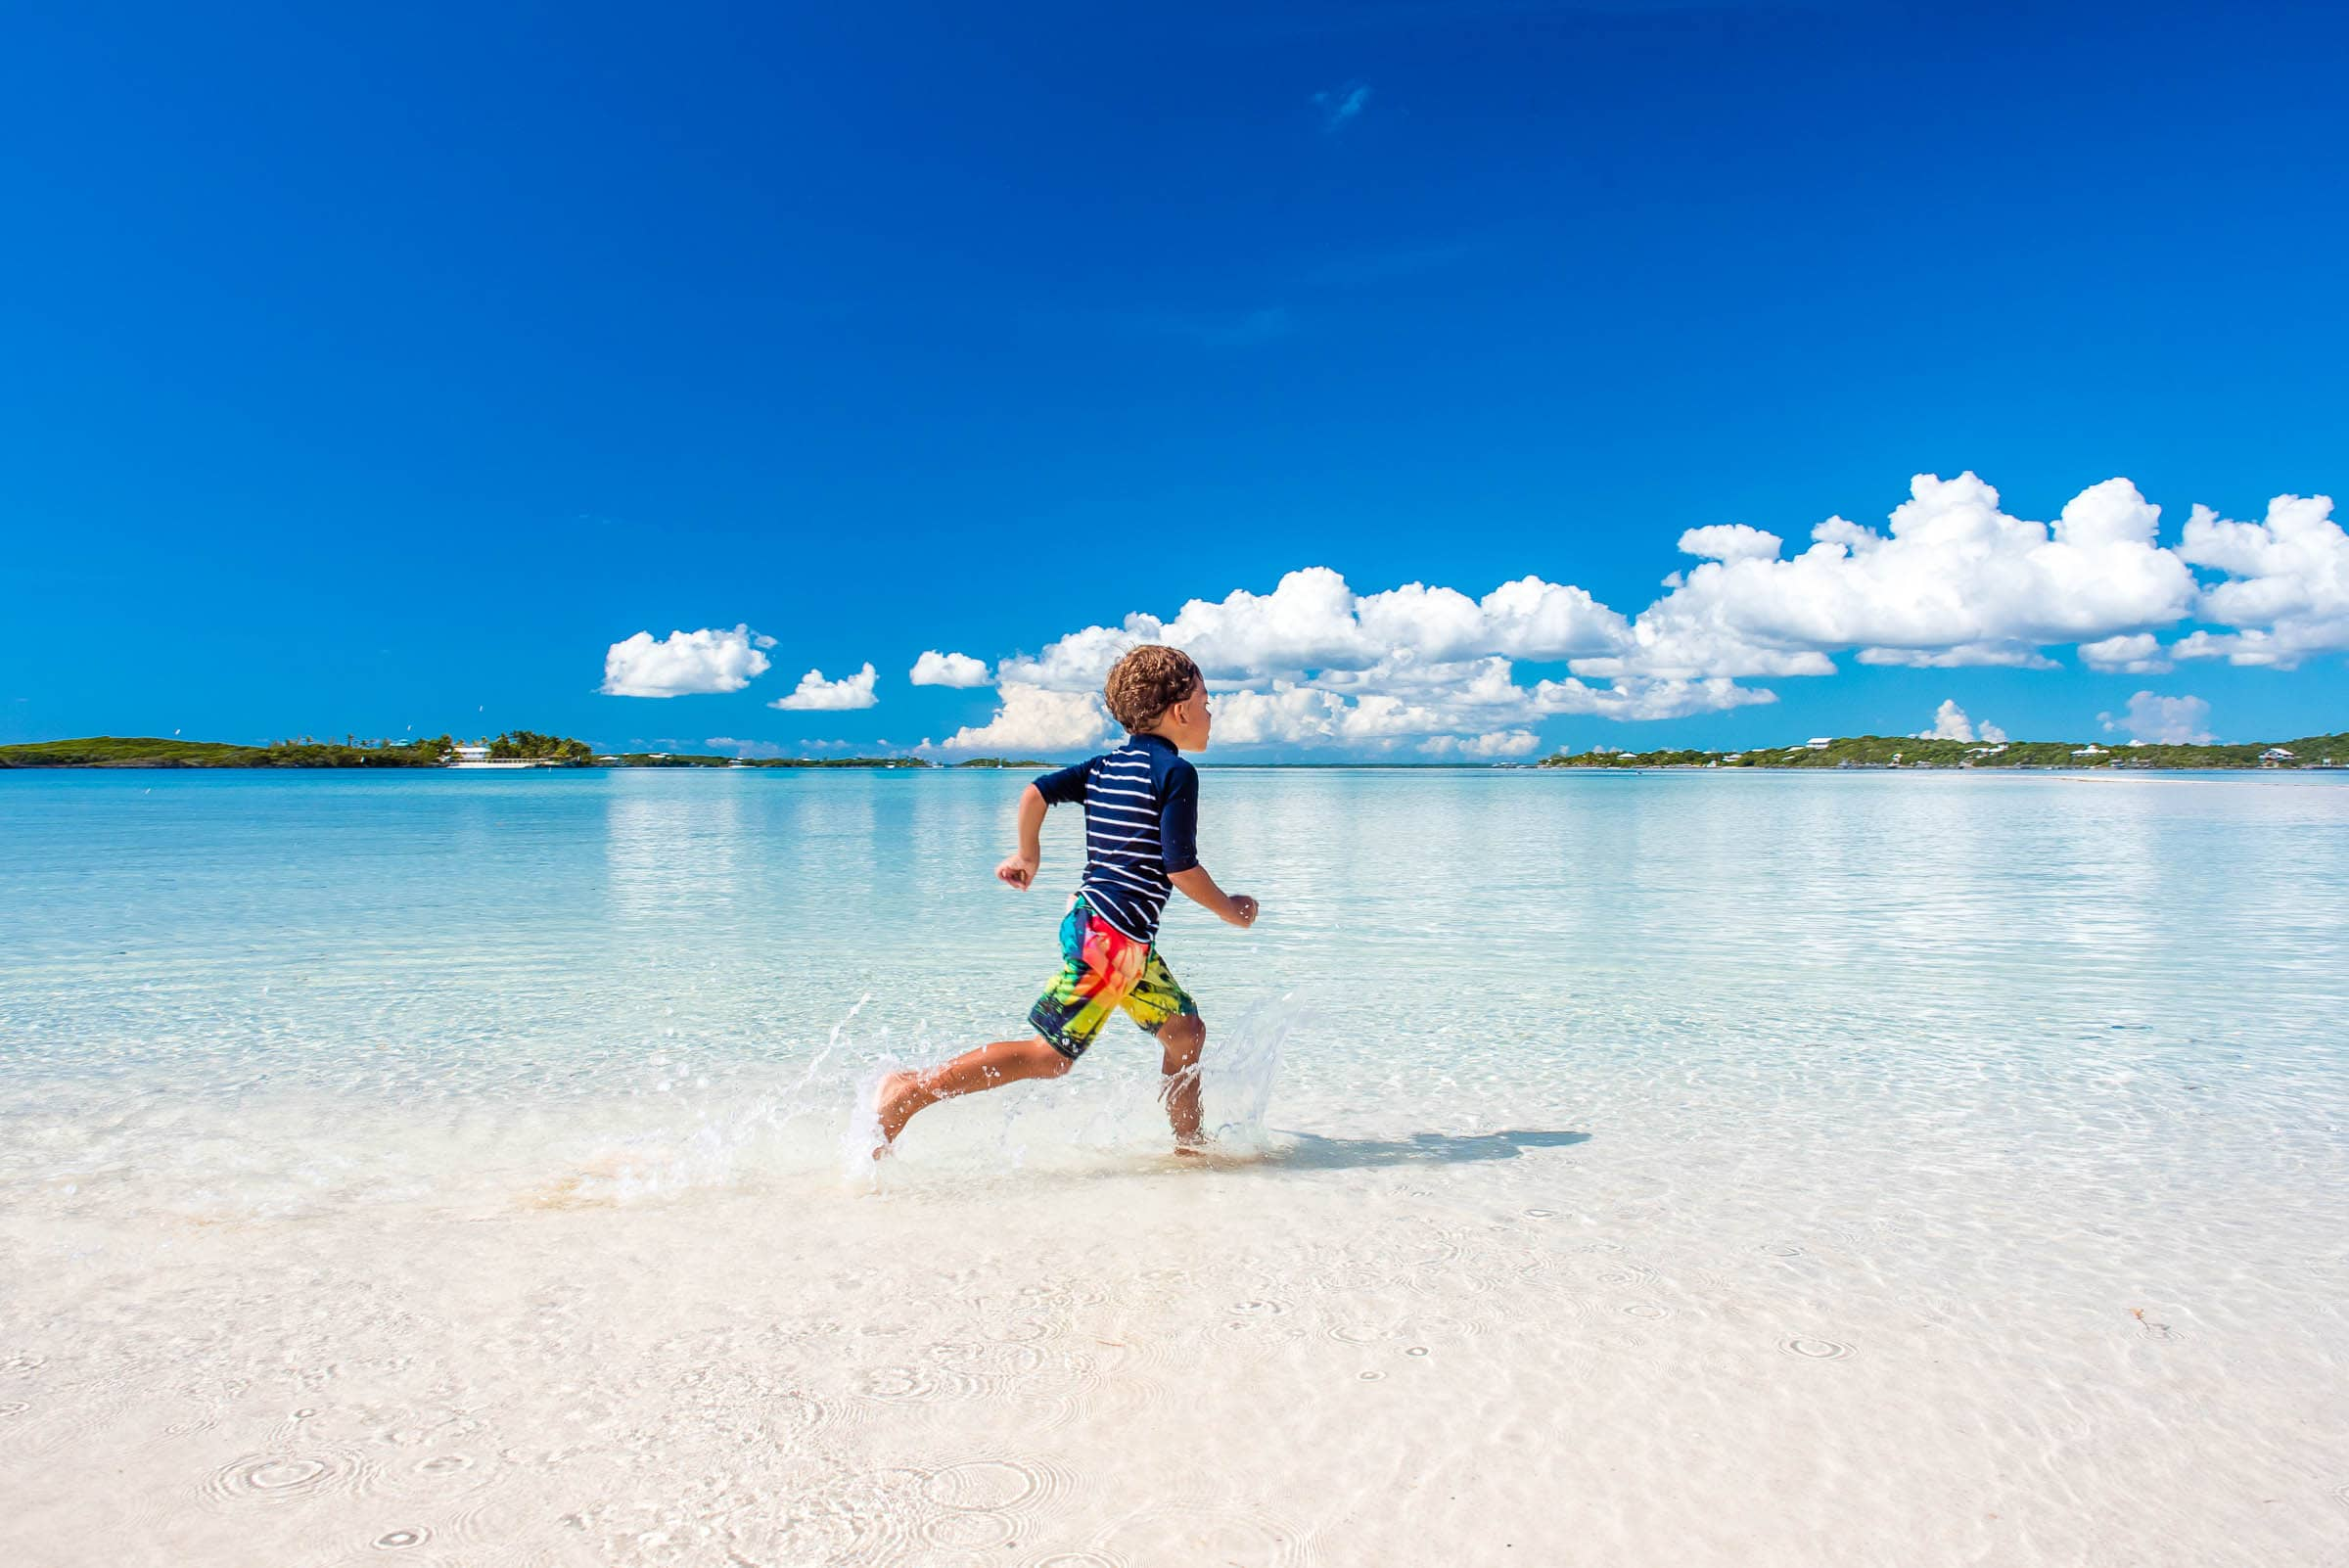 Running on Tahiti Beach, Elbow Cay, Abaco, The Bahamas by Patrick Bennett